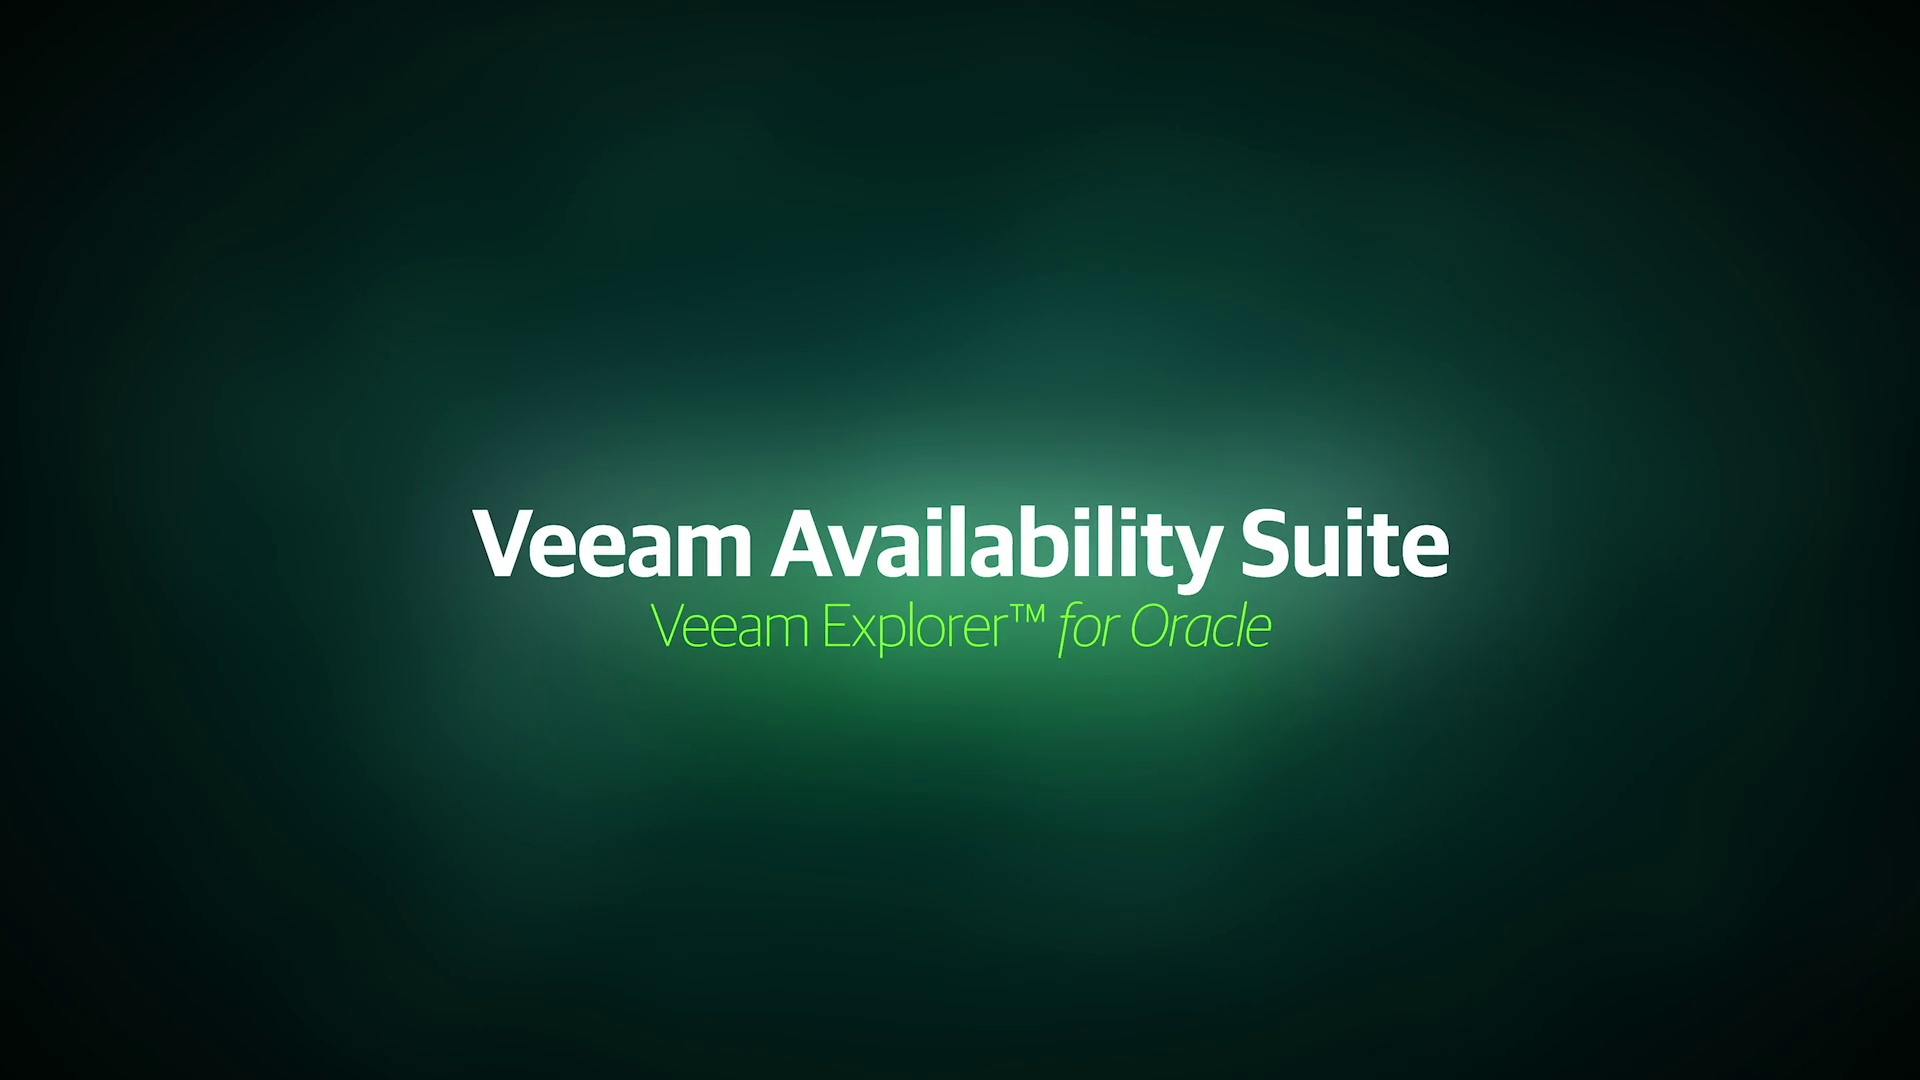 Increase Availability for Oracle databases with Veeam